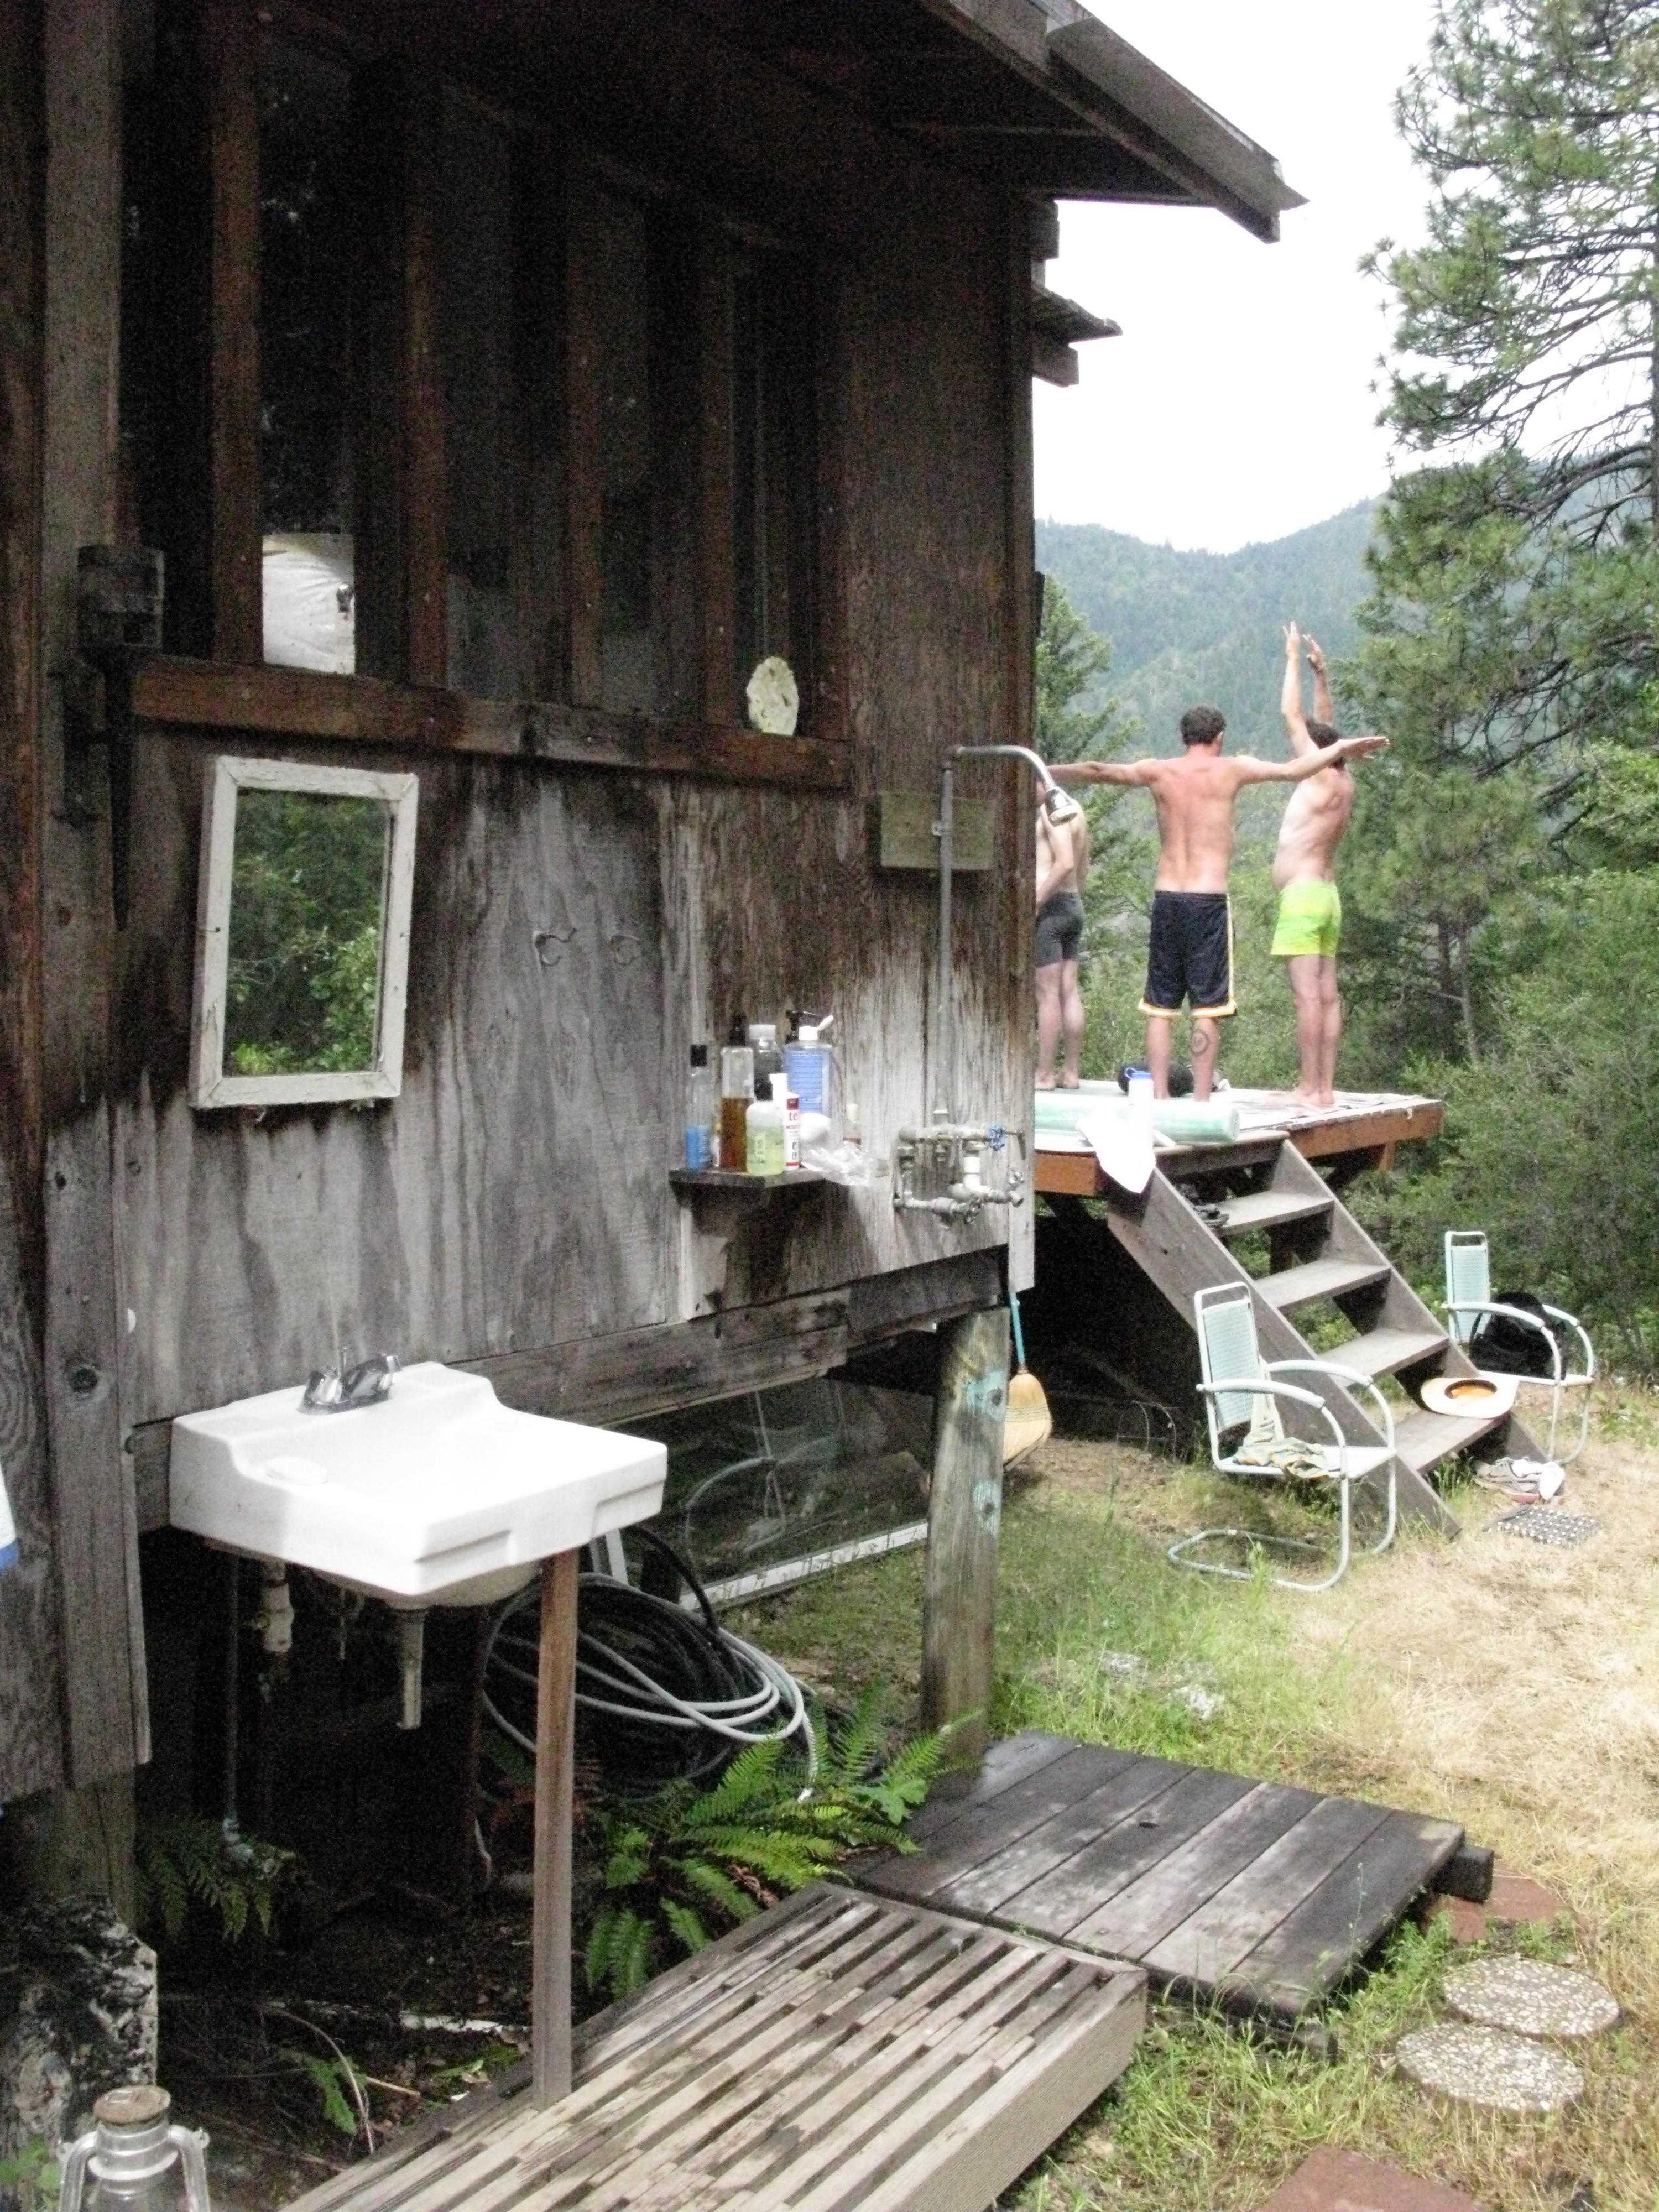 Forest Reflection in Mirror of Outdoor Bathhouse at Cabin, Covelo Yoga and Healing Festival